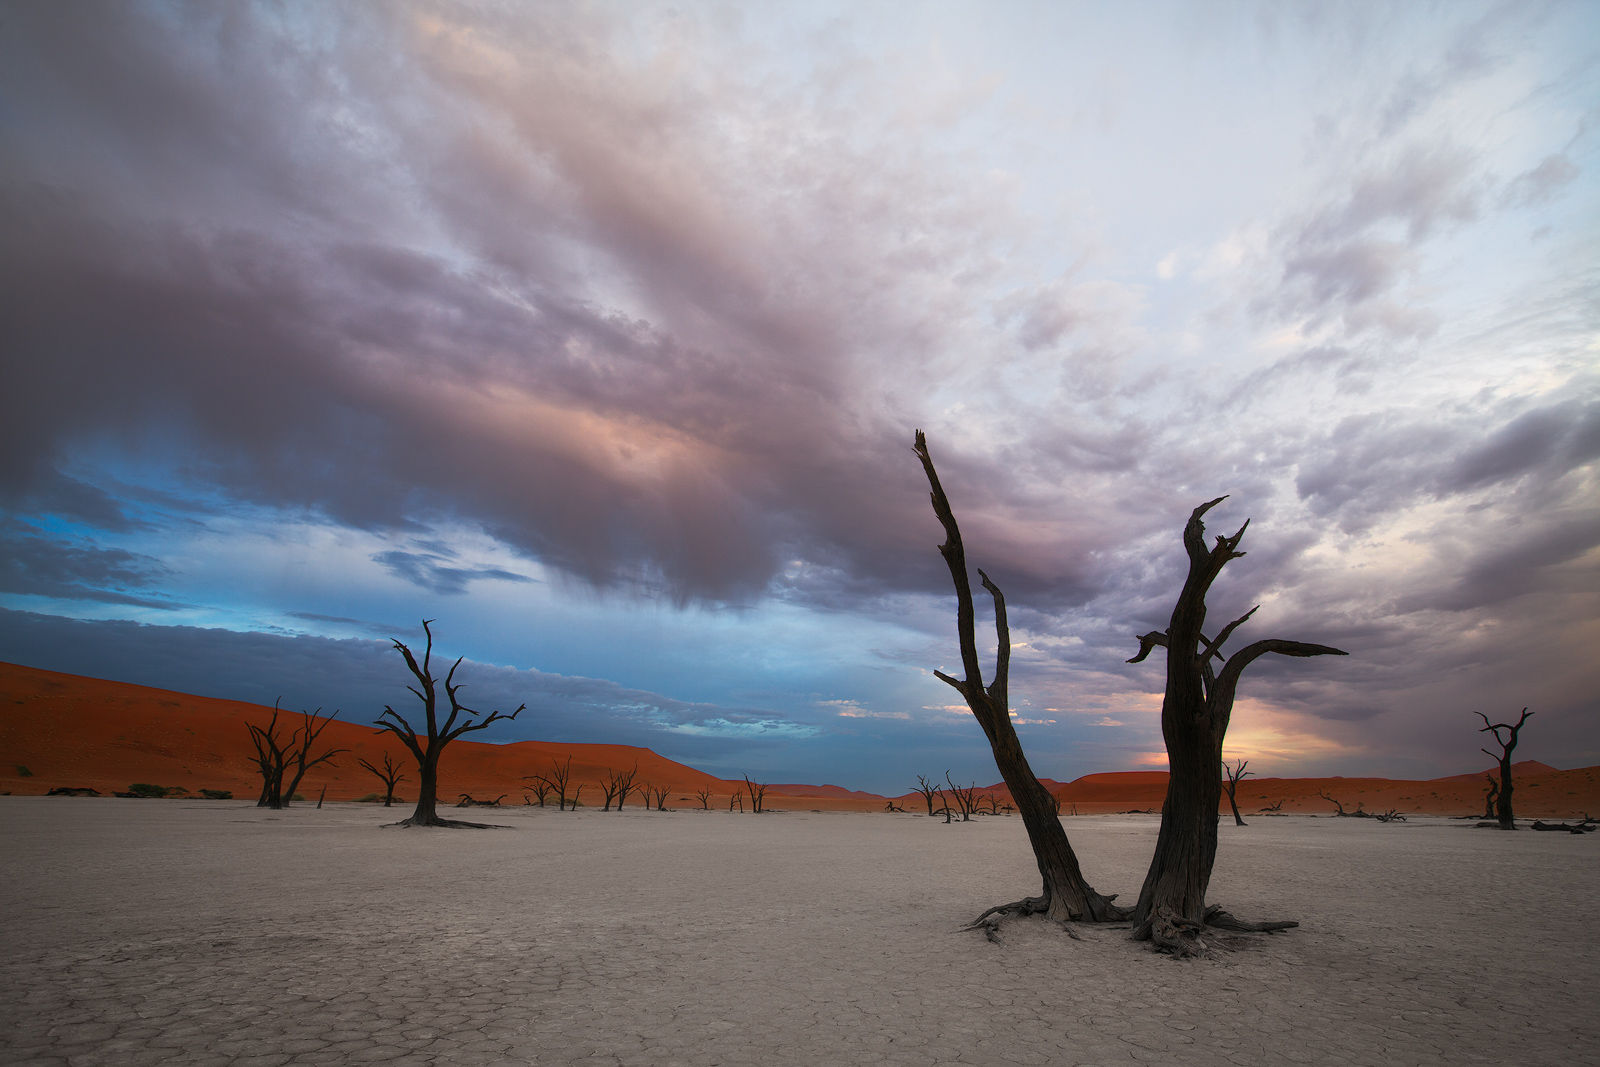 2012, africa, african, dead tree, deadvlei, desert, forest, horizontal, namibia, namibian, sand, tree, photo